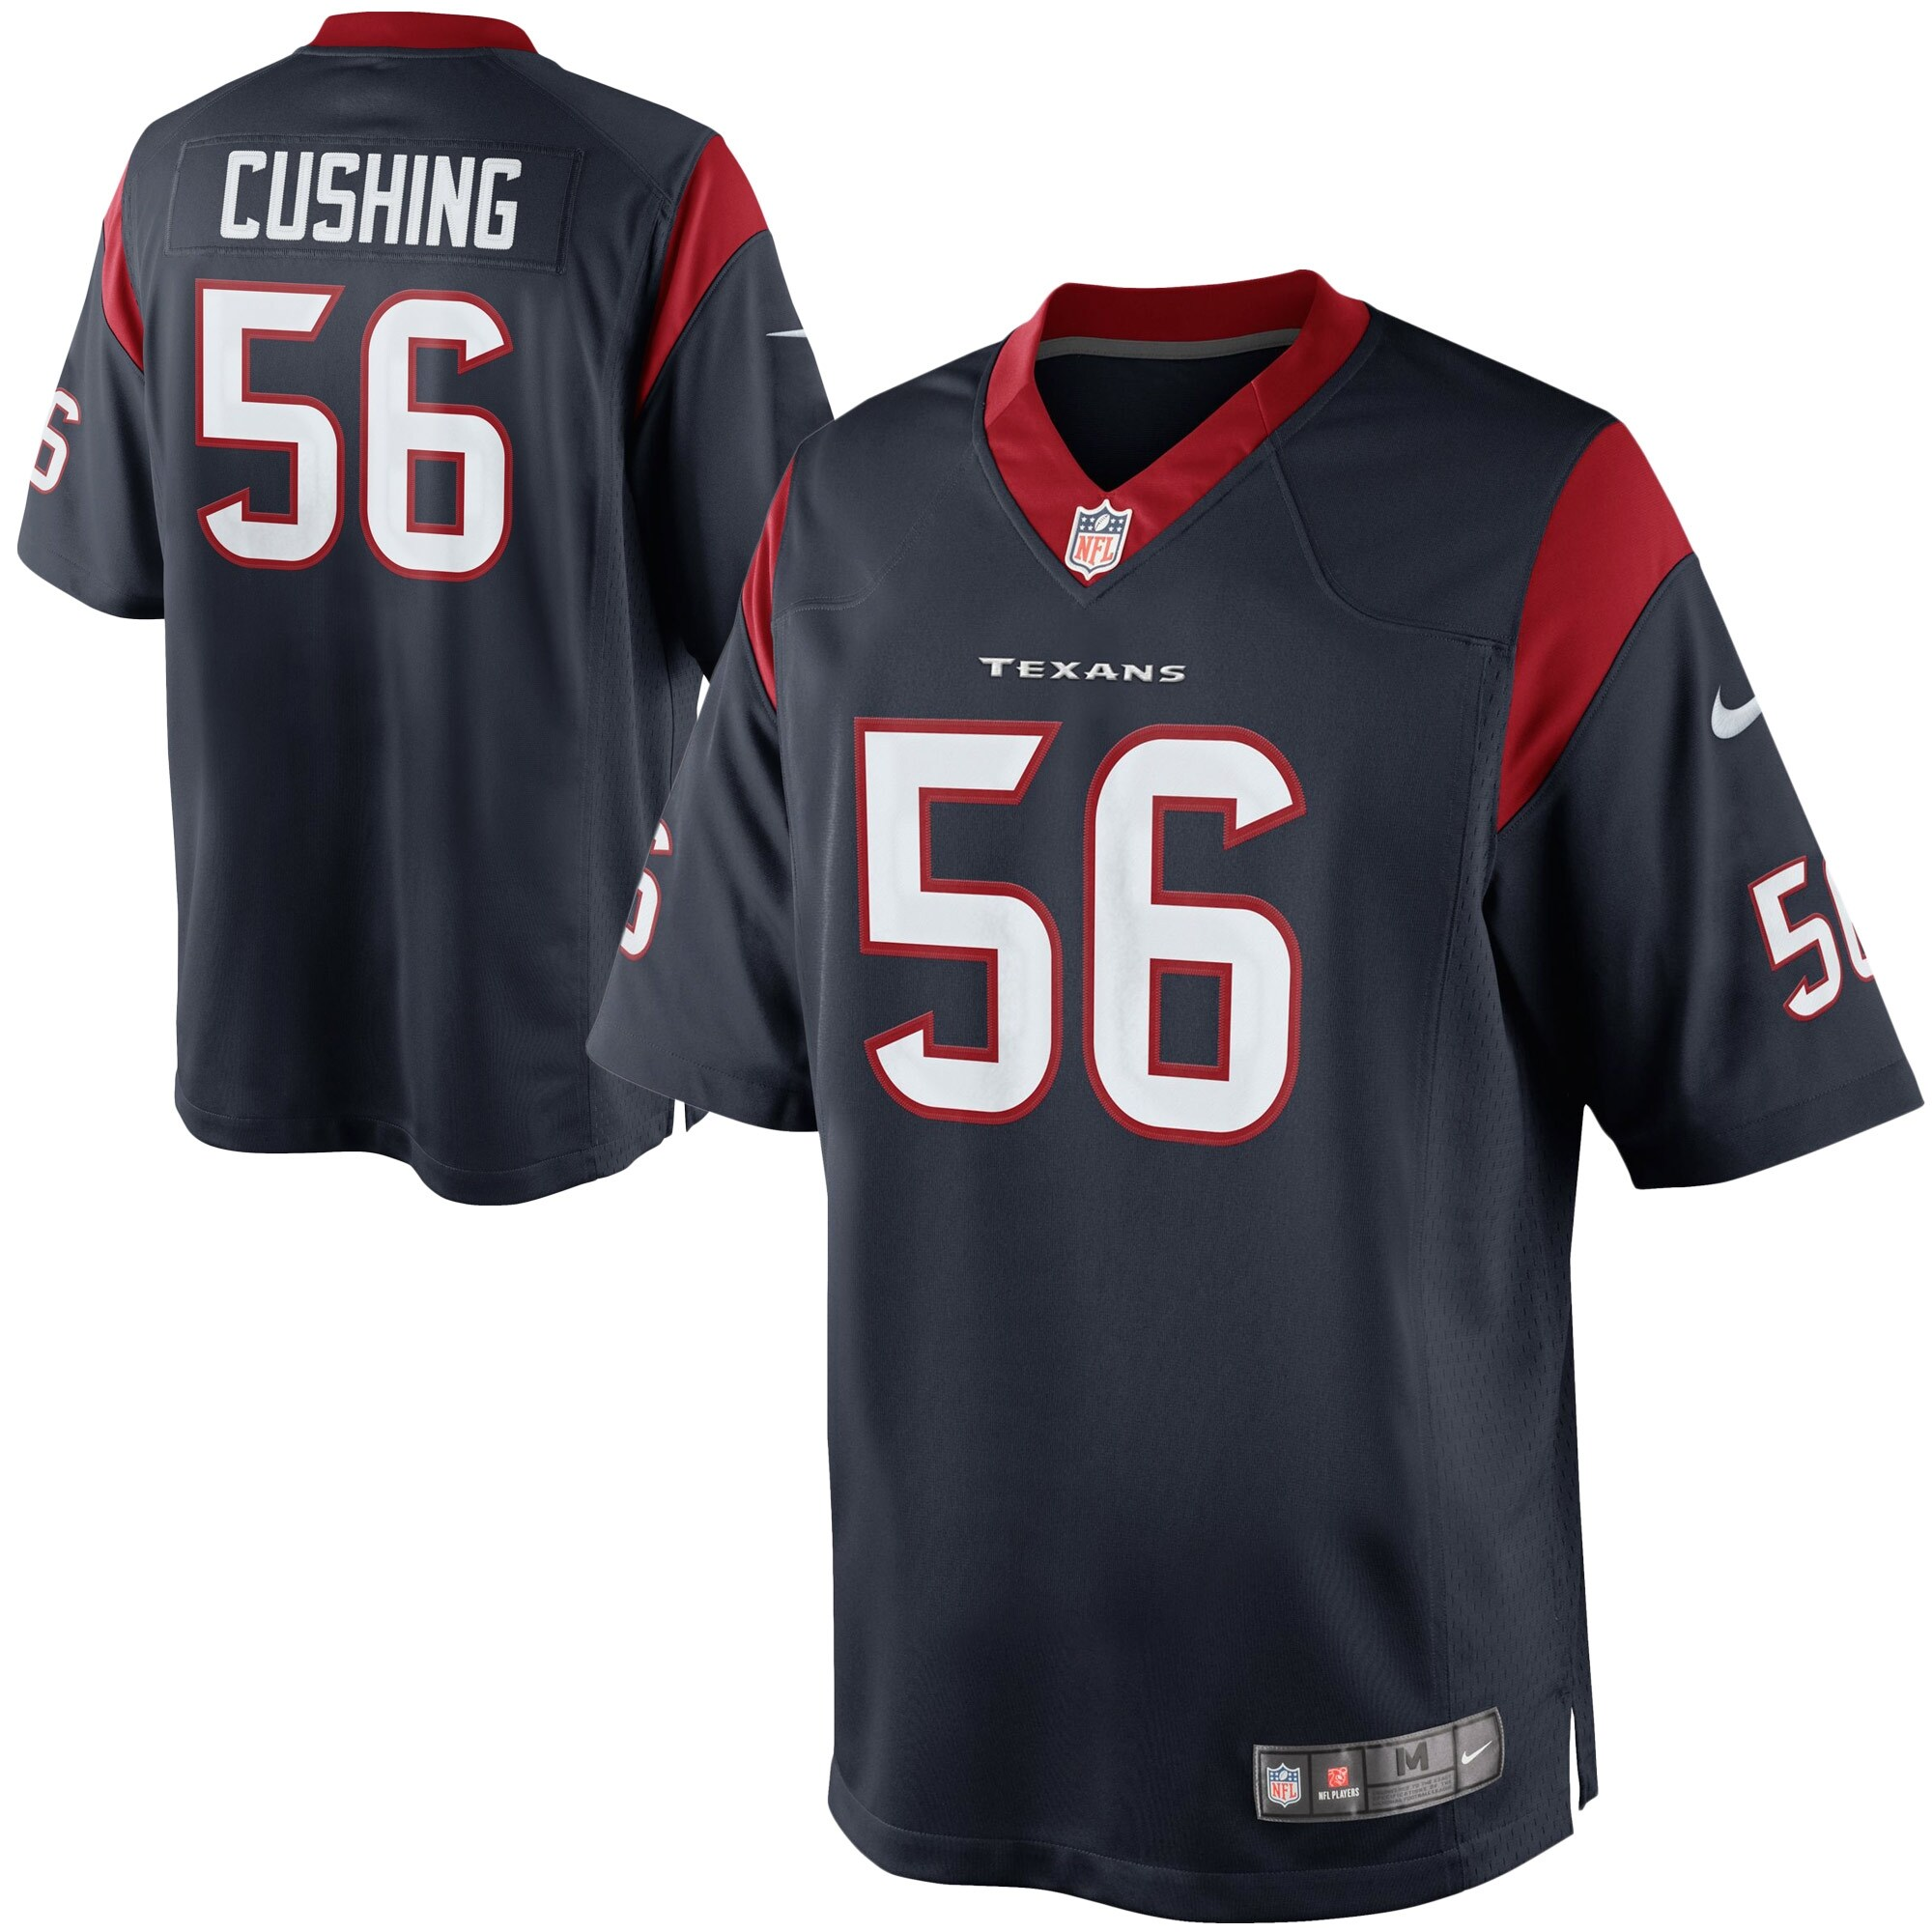 Brian Cushing Houston Texans Nike Team Color Limited Jersey - Navy Blue